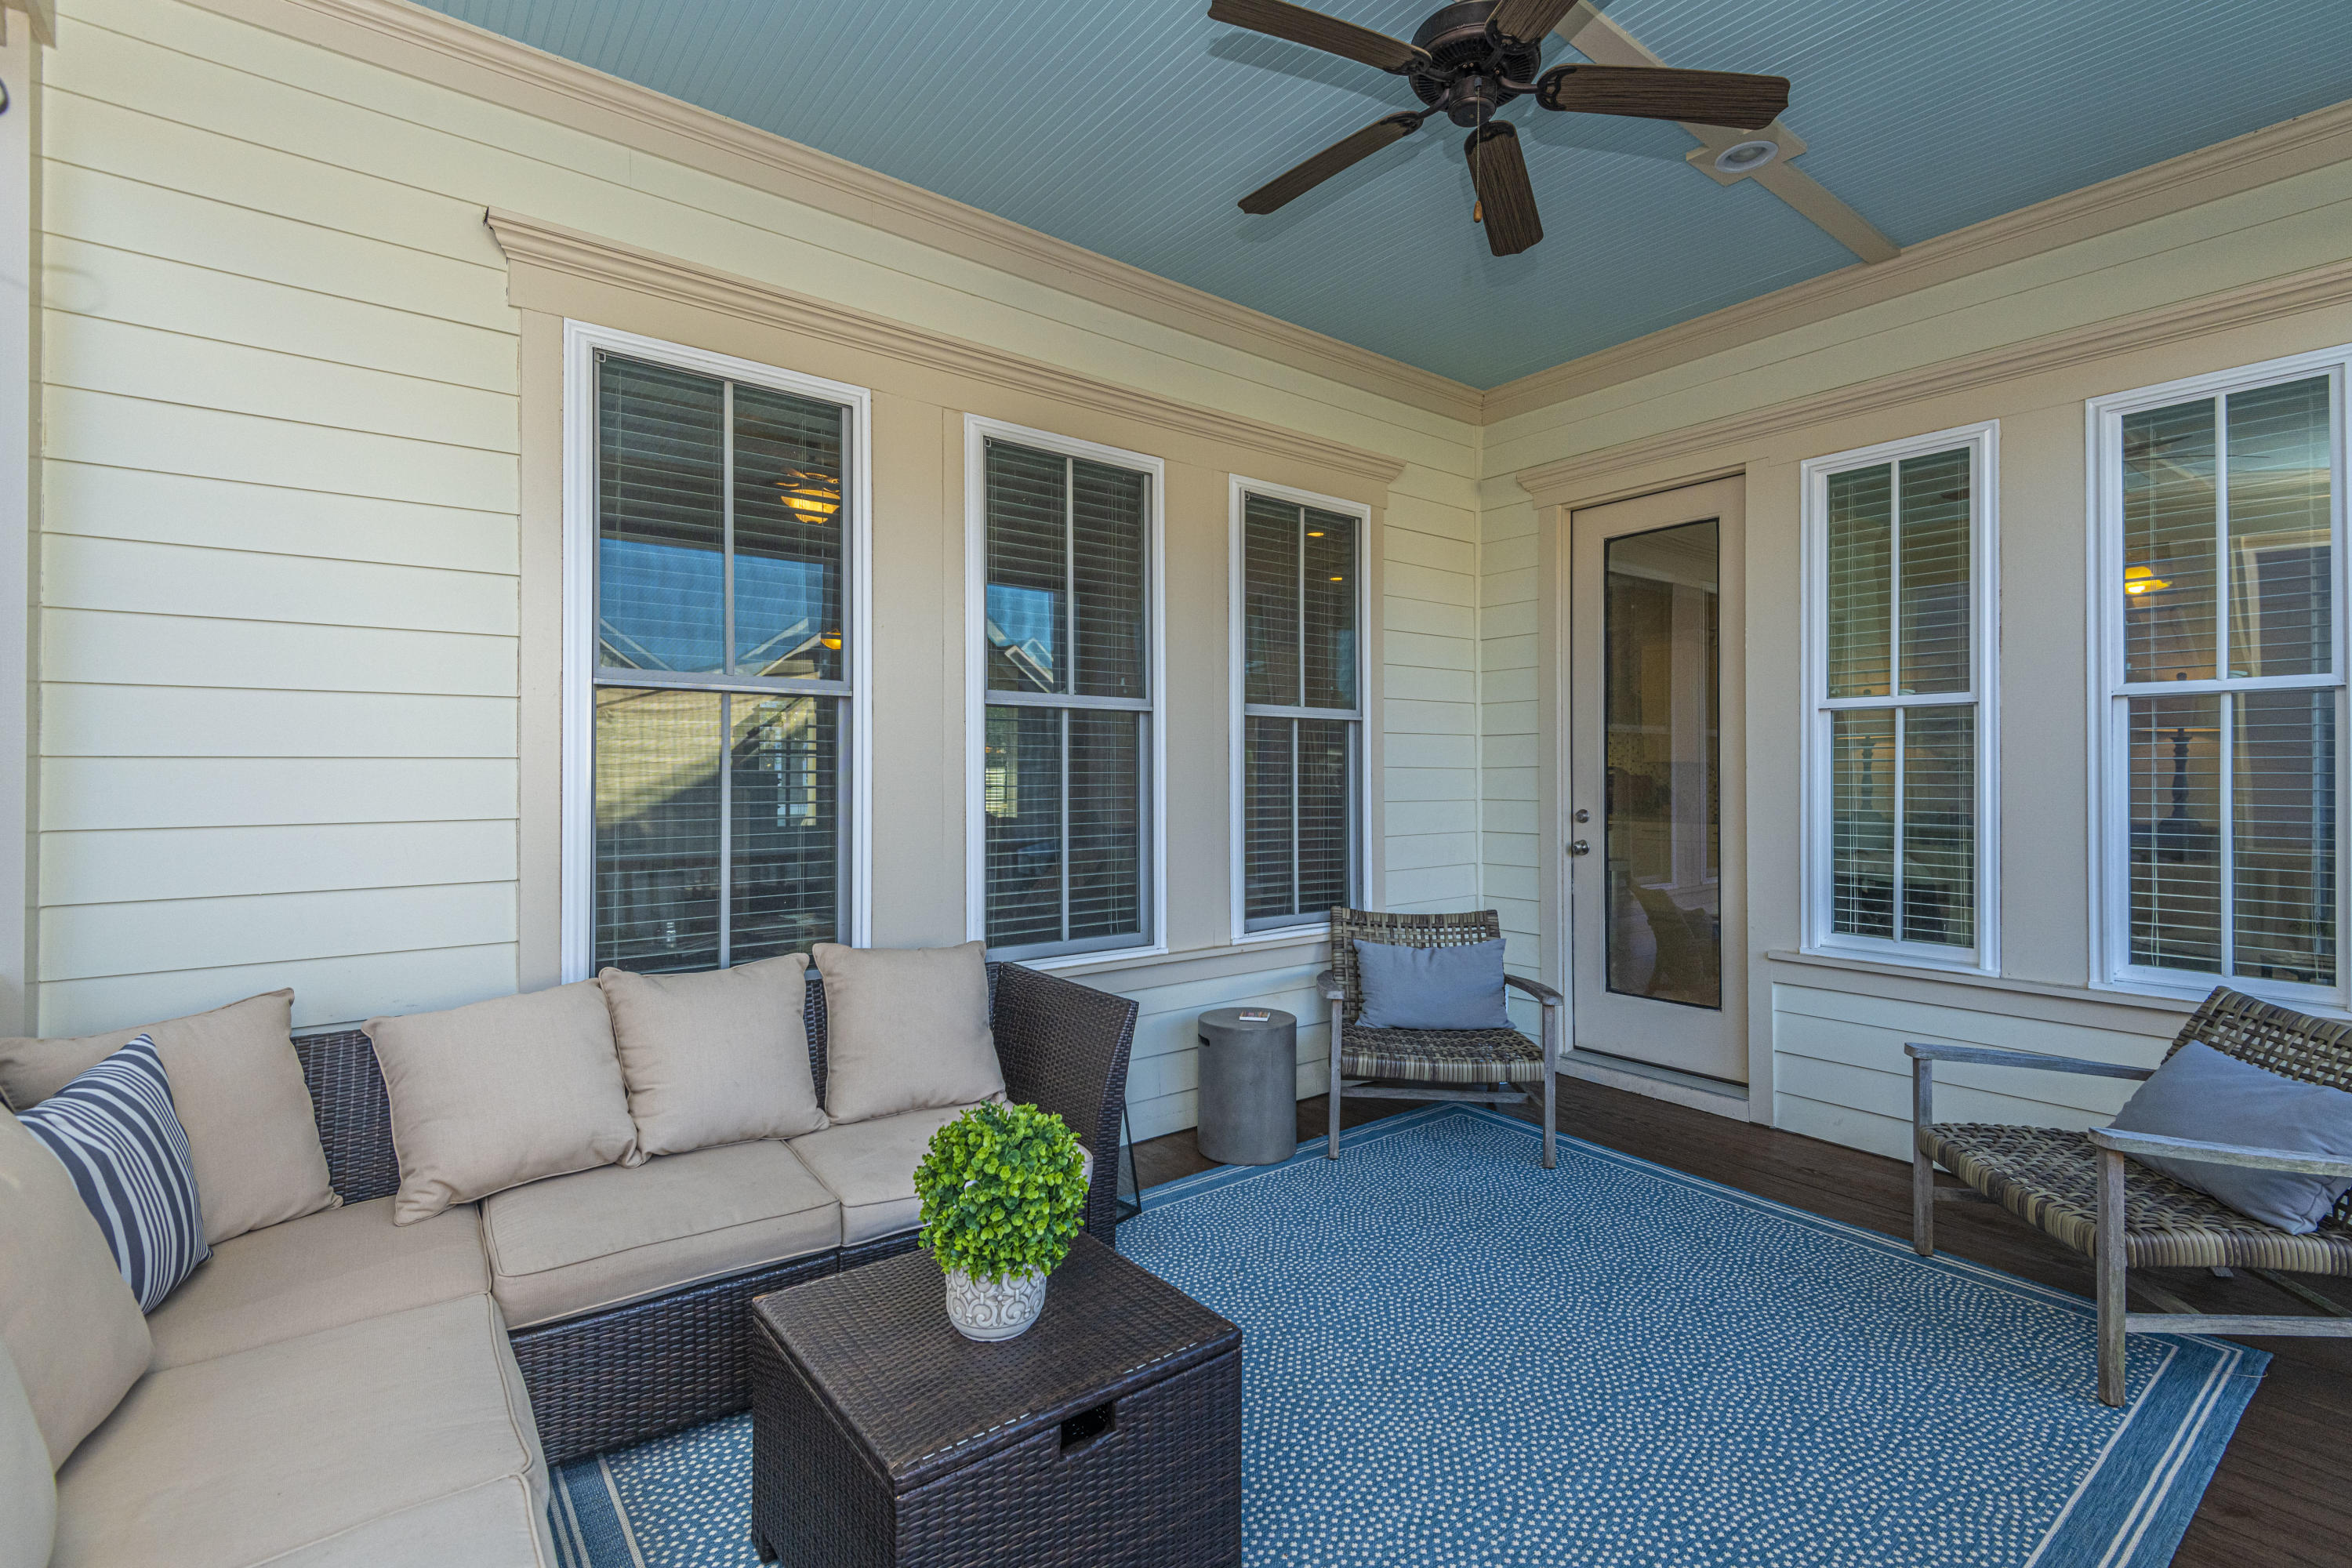 Watermark Homes For Sale - 1445 Lettered Olive, Mount Pleasant, SC - 9